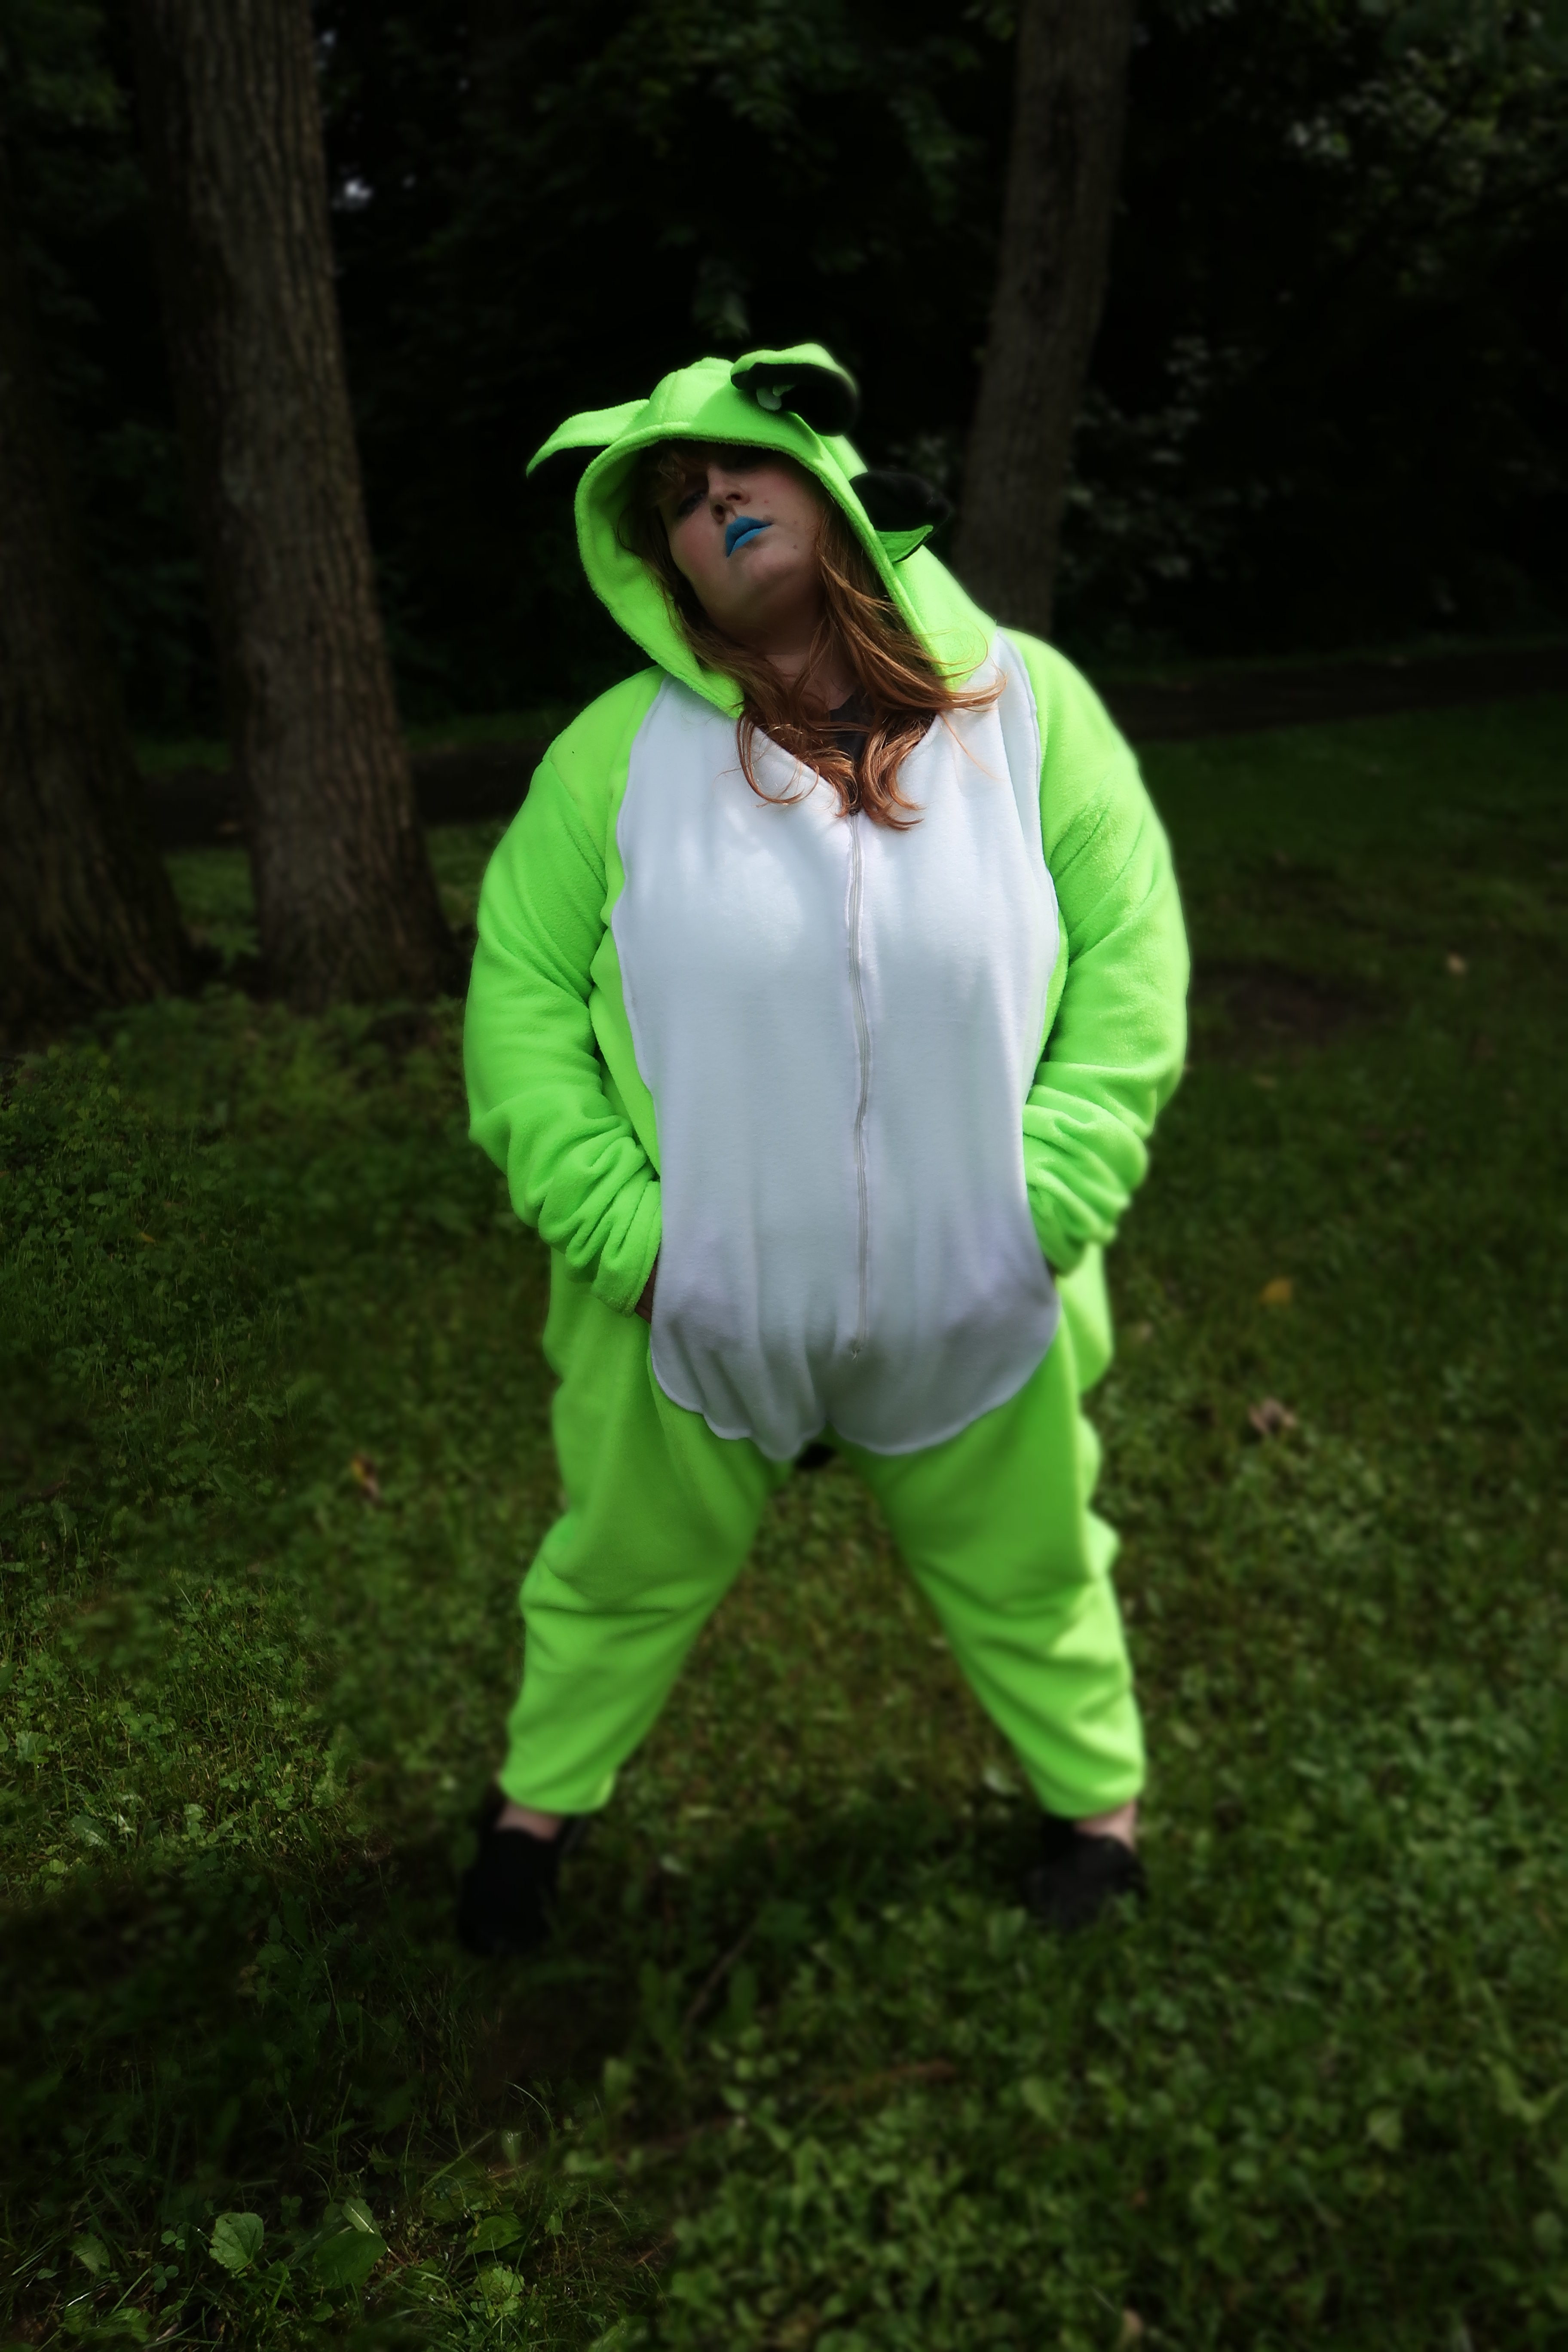 obletop-promotional-phtography-kigu-full-body-front-by-connor-goodwolf